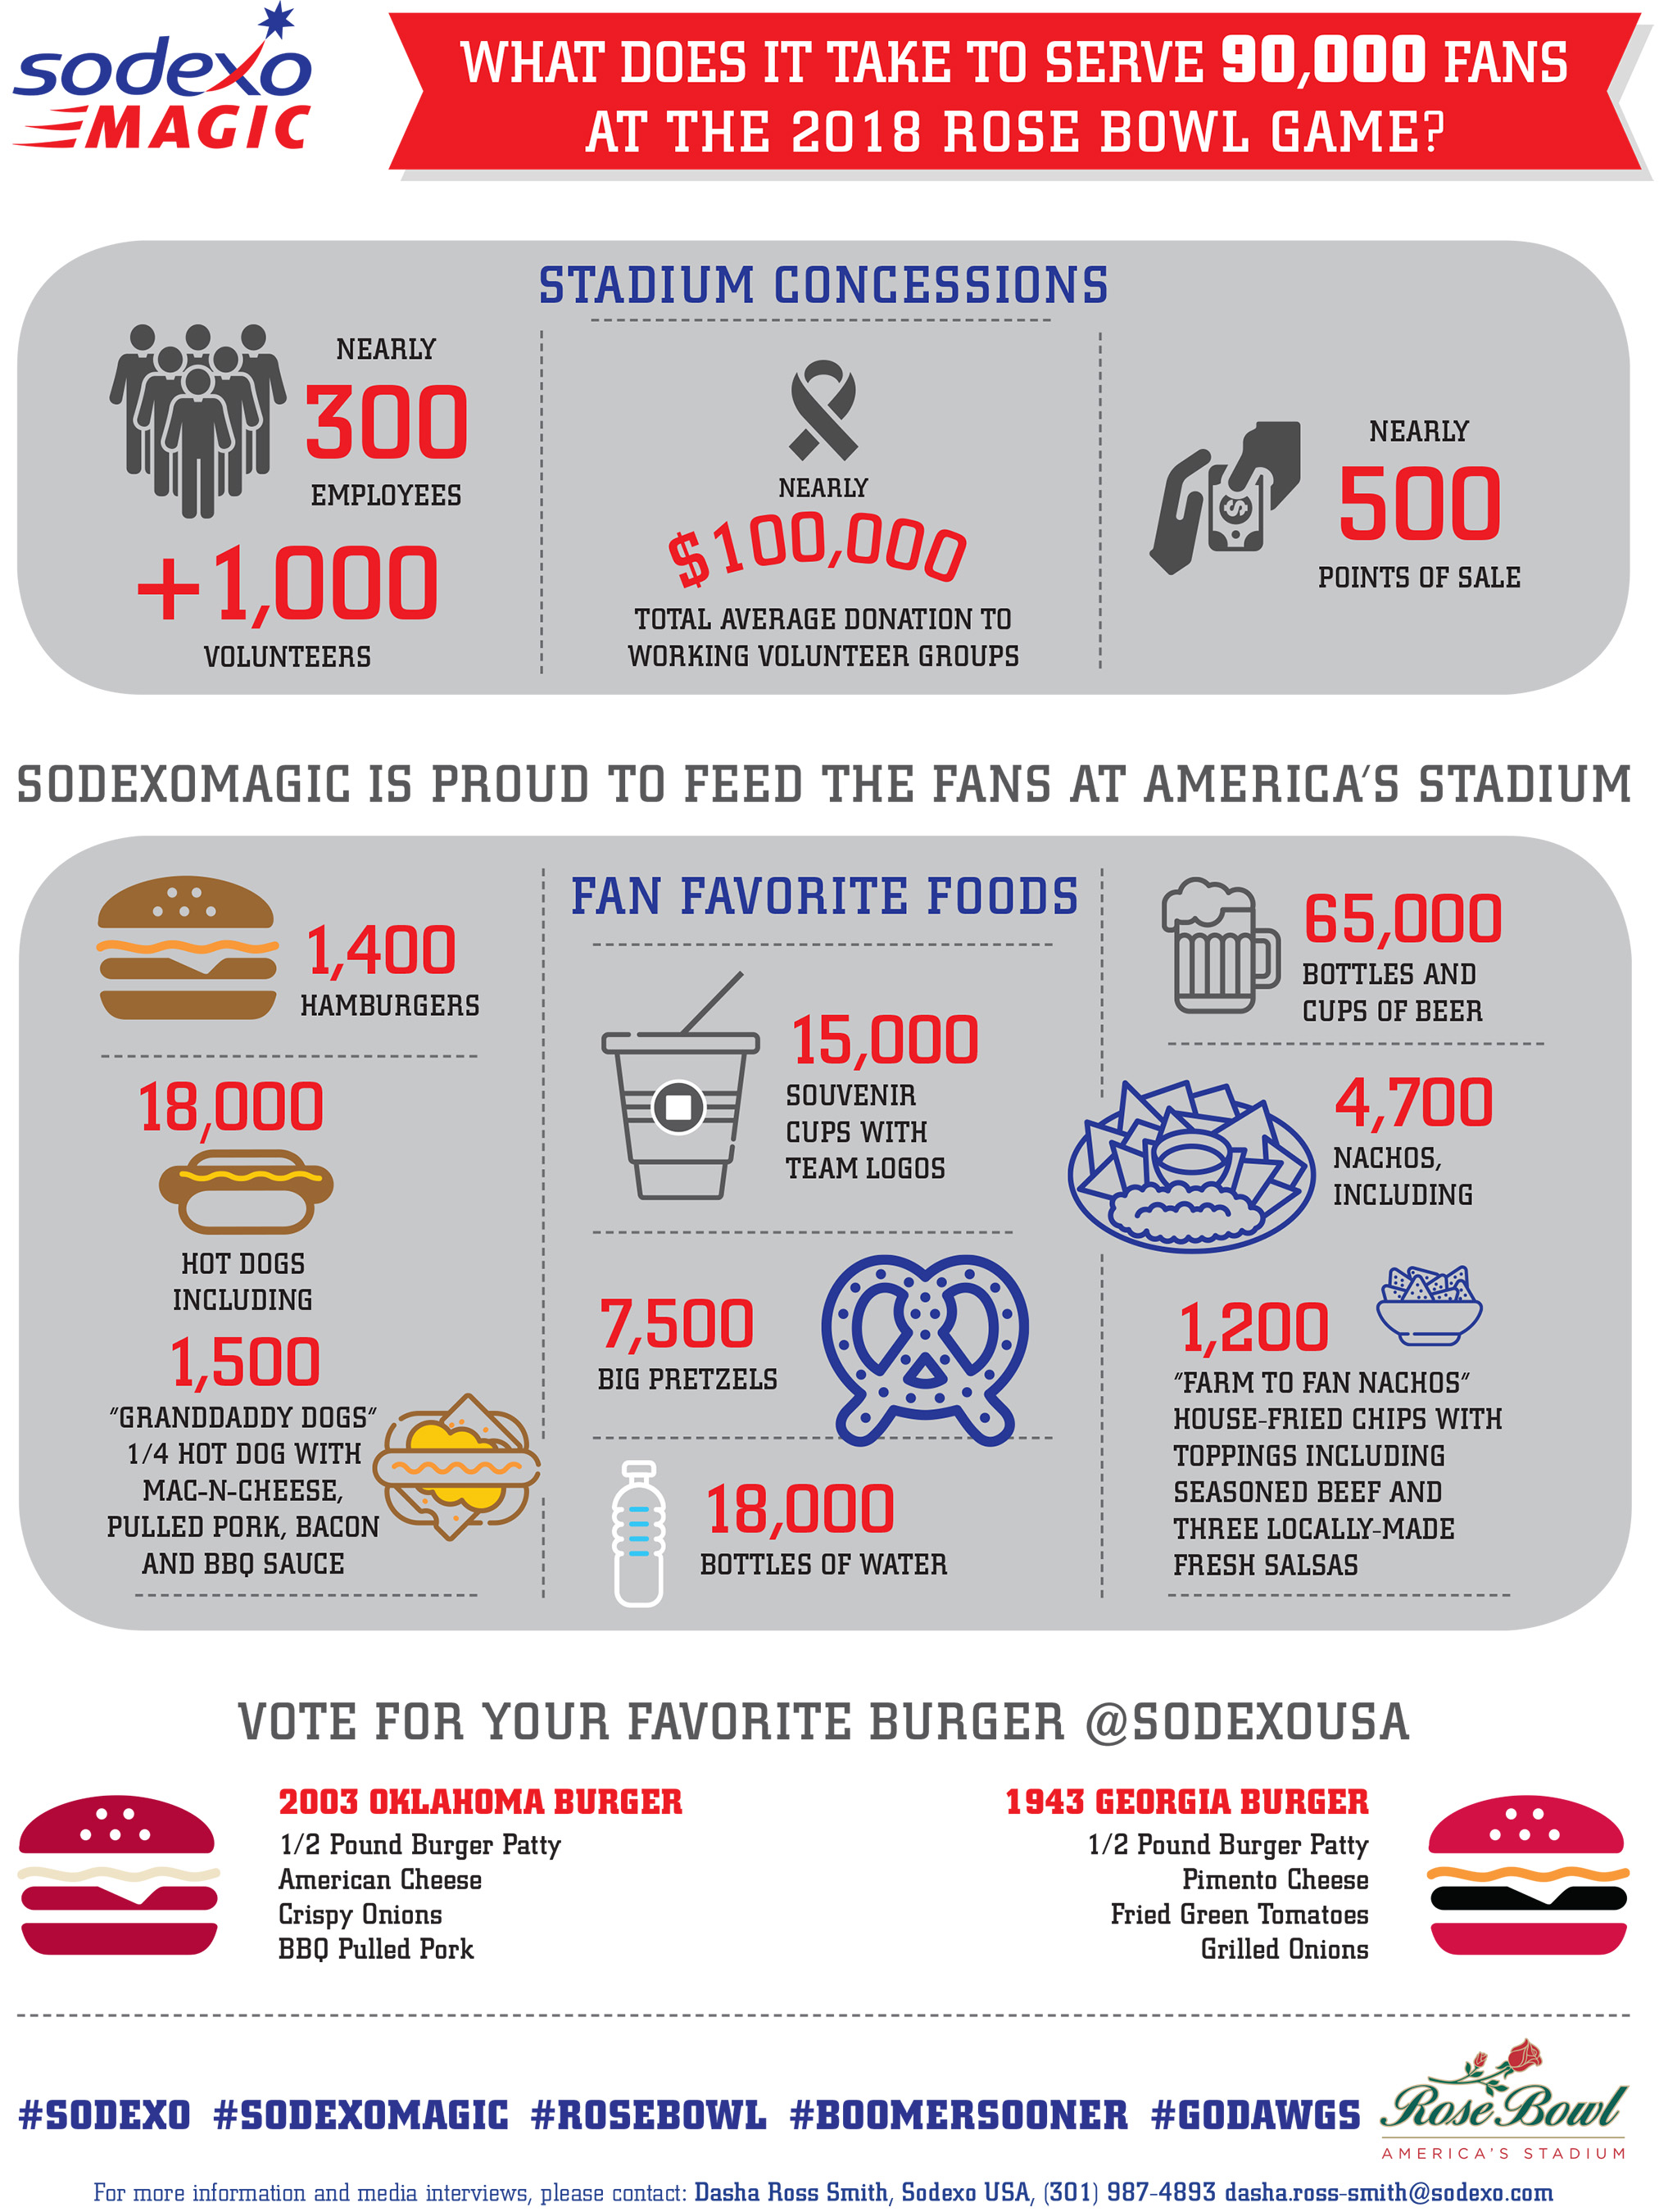 What Does it Take to Serve 90,000 Fans at the 2018 Rose Bowl Game?